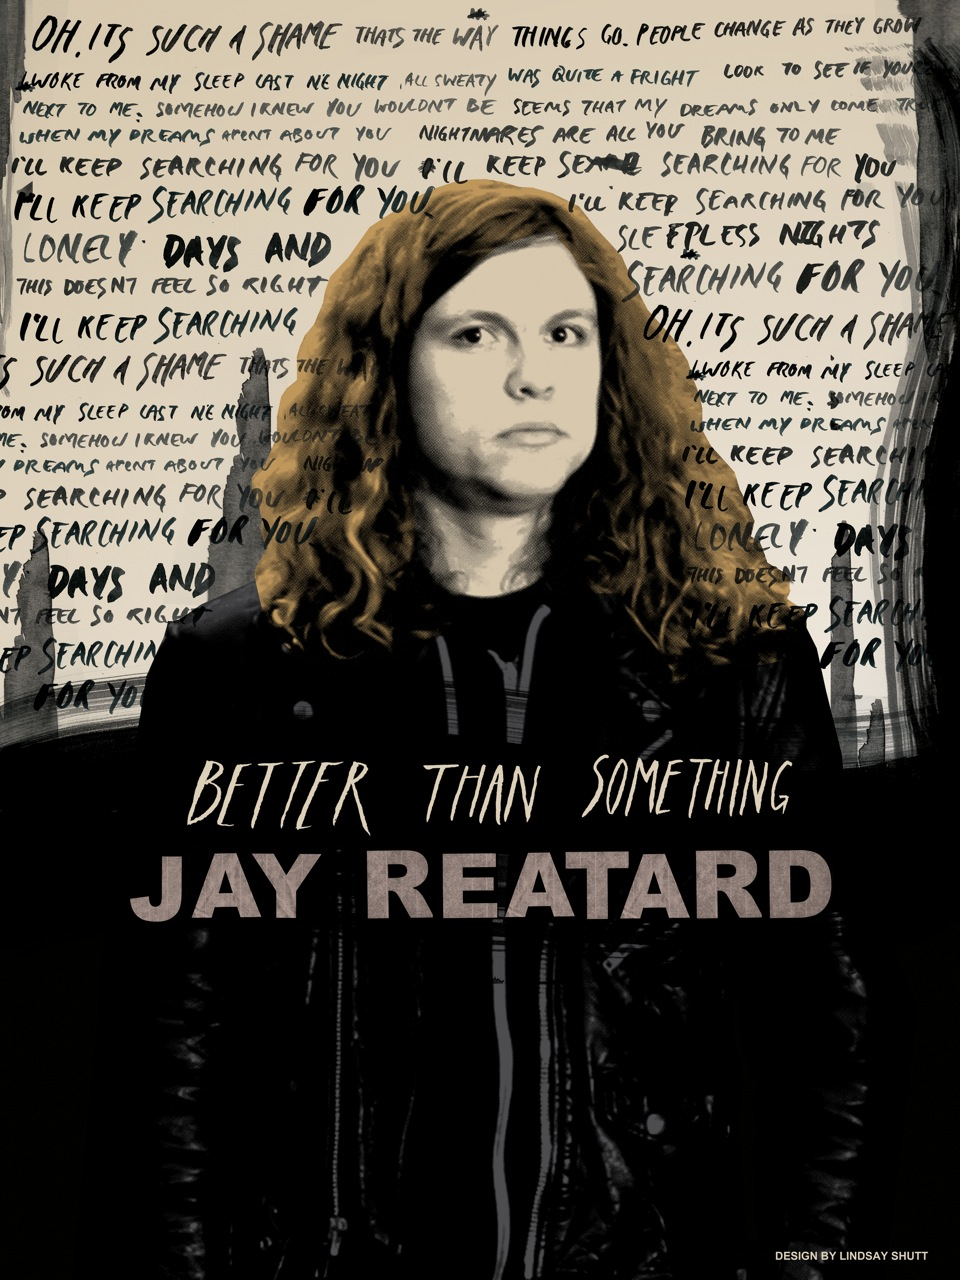 'Better Than Something' - A Film About Jay Reatard